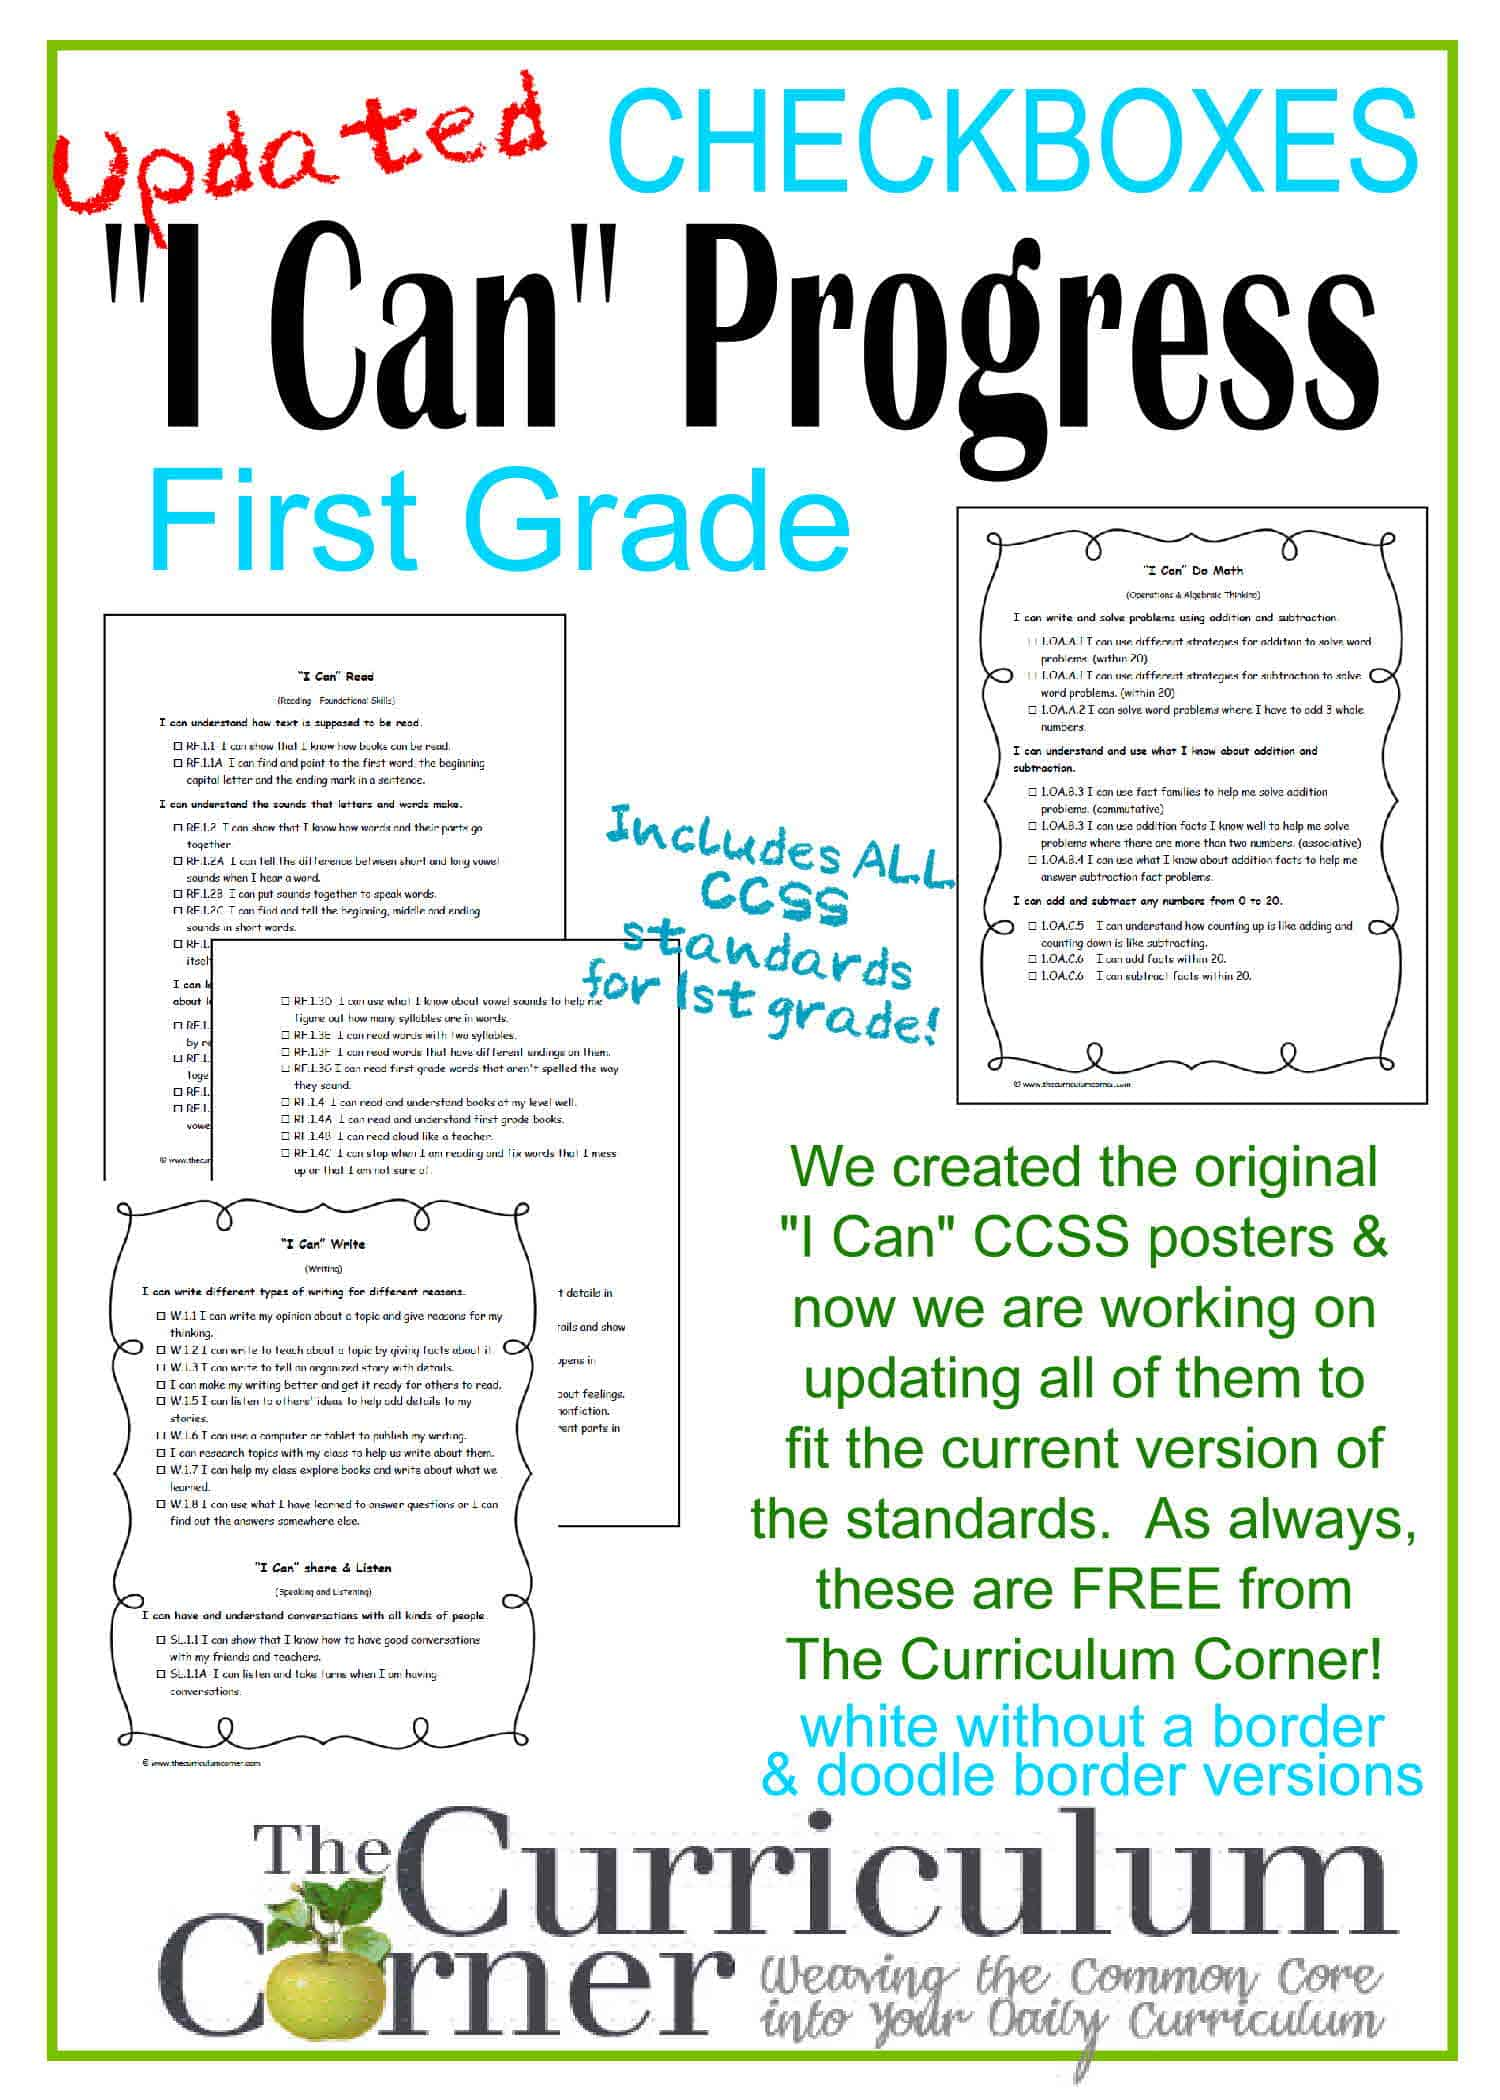 """Updated 1st Grade """"I Can"""" CCSS Statements Progress Checkboxes"""